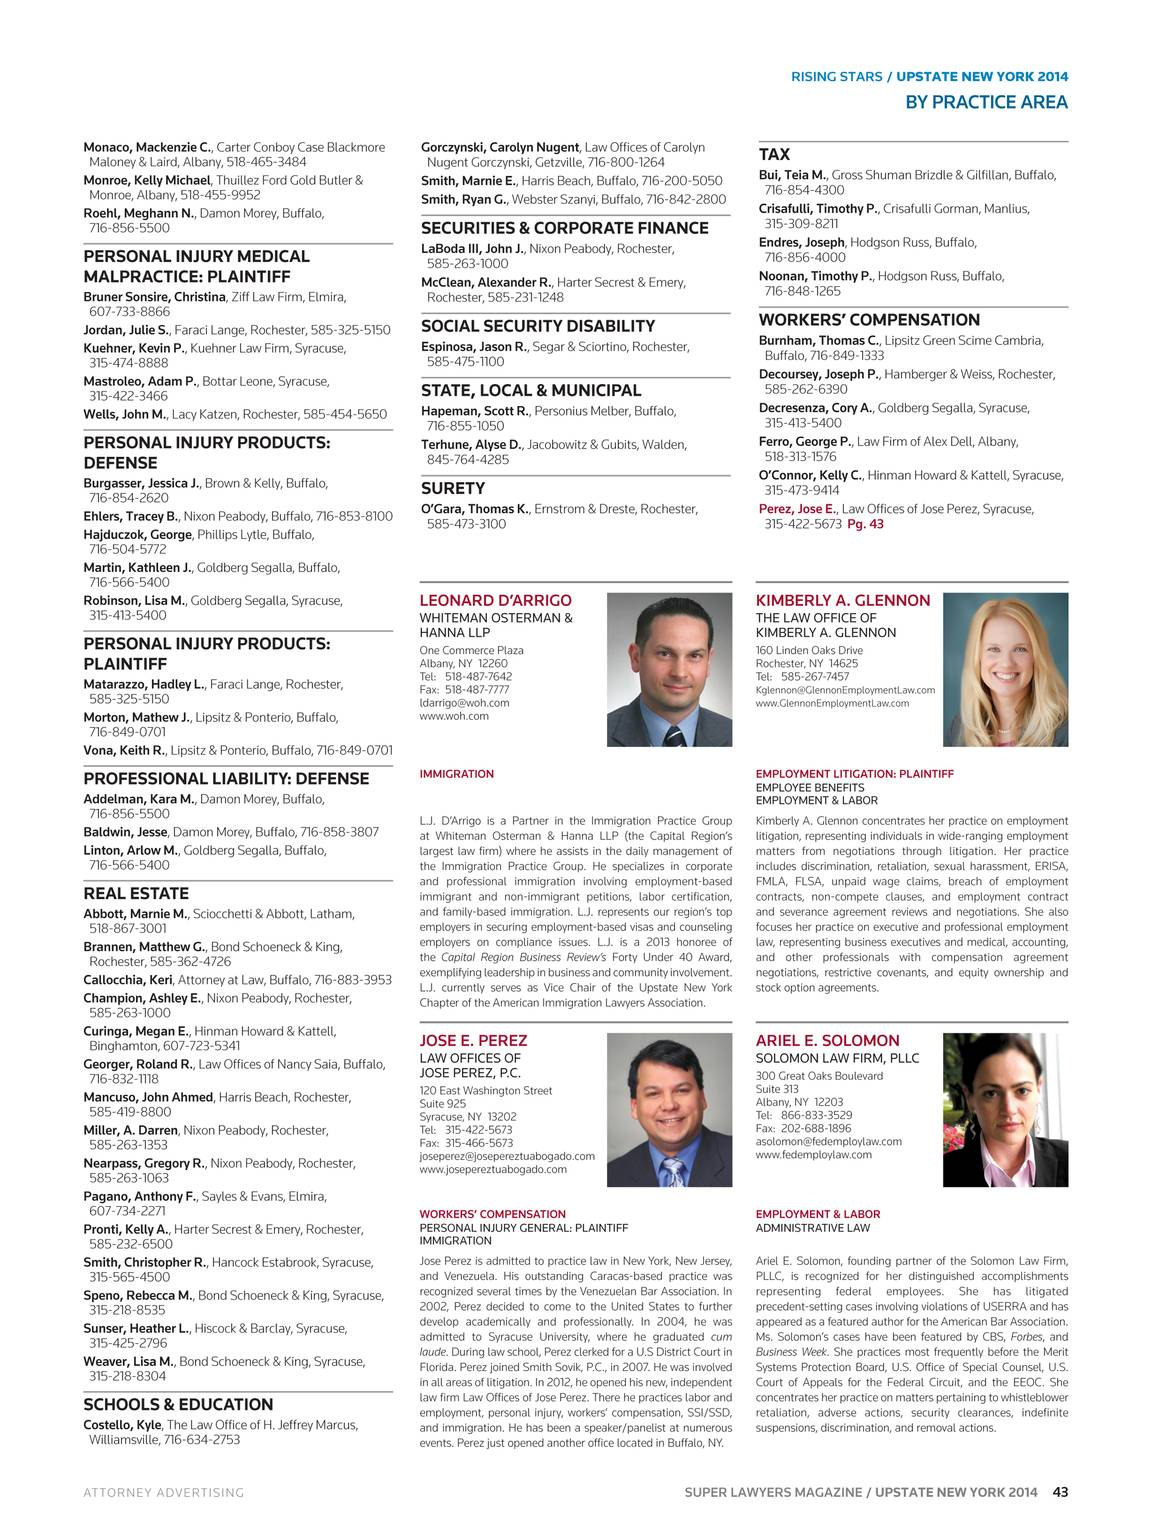 Super Lawyers - Upstate New York 2014 - page 42